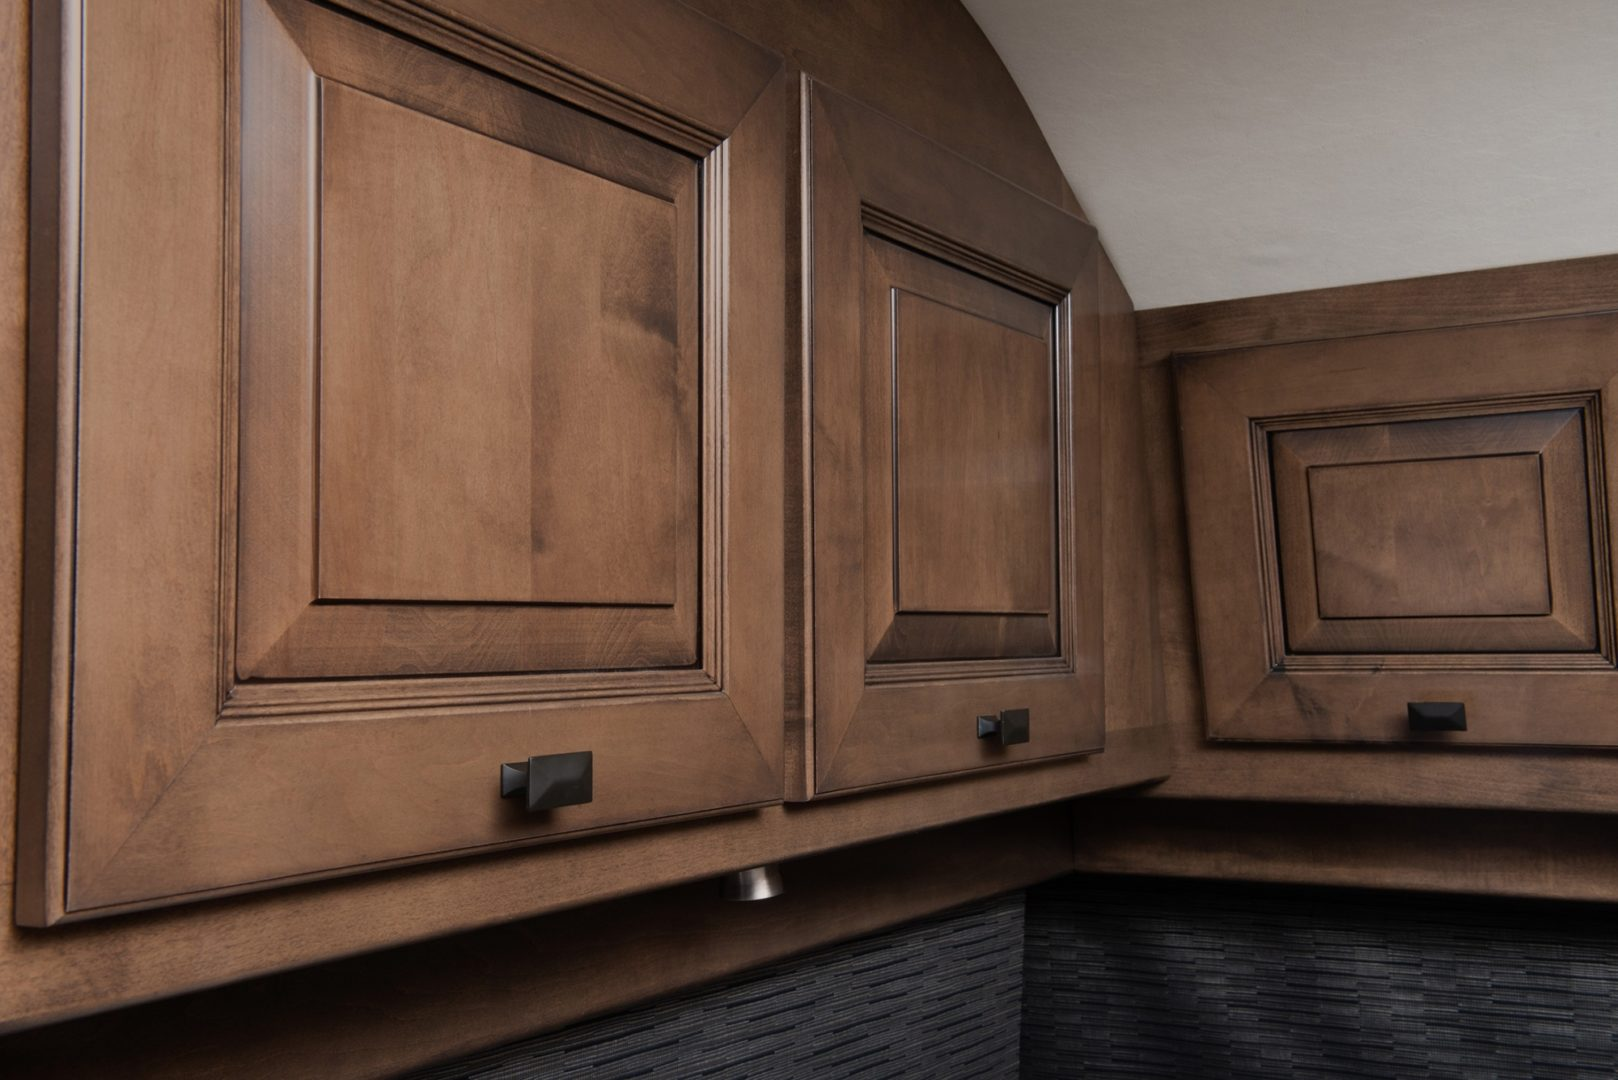 Cognac solid wood cabinetry